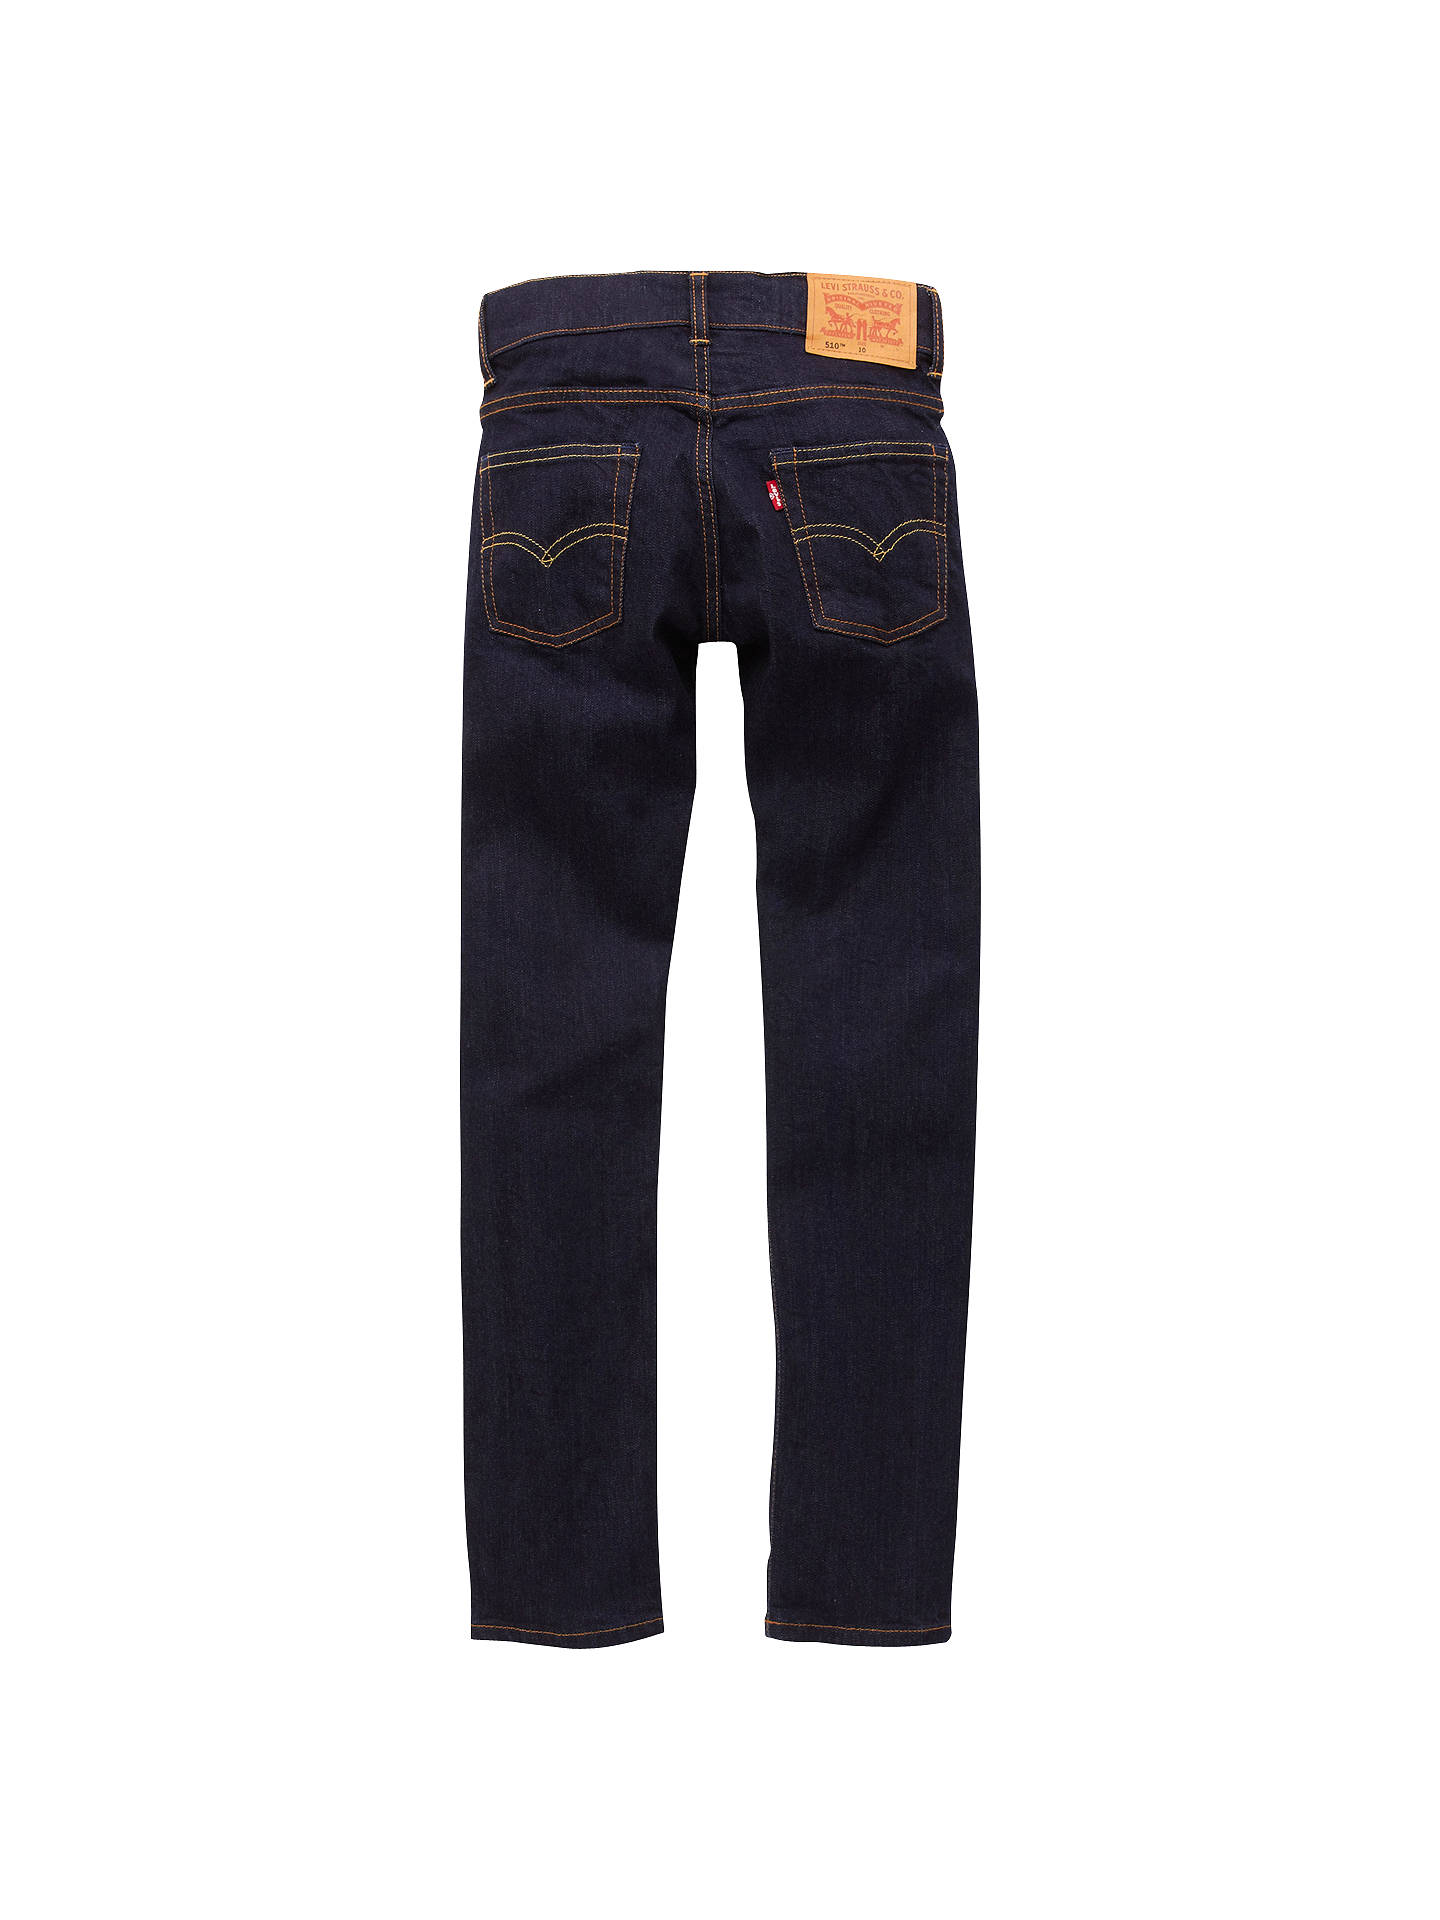 Buy Levi's Boys' 510 Skinny Fit Denim Jeans, Indigo, 6 years Online at johnlewis.com